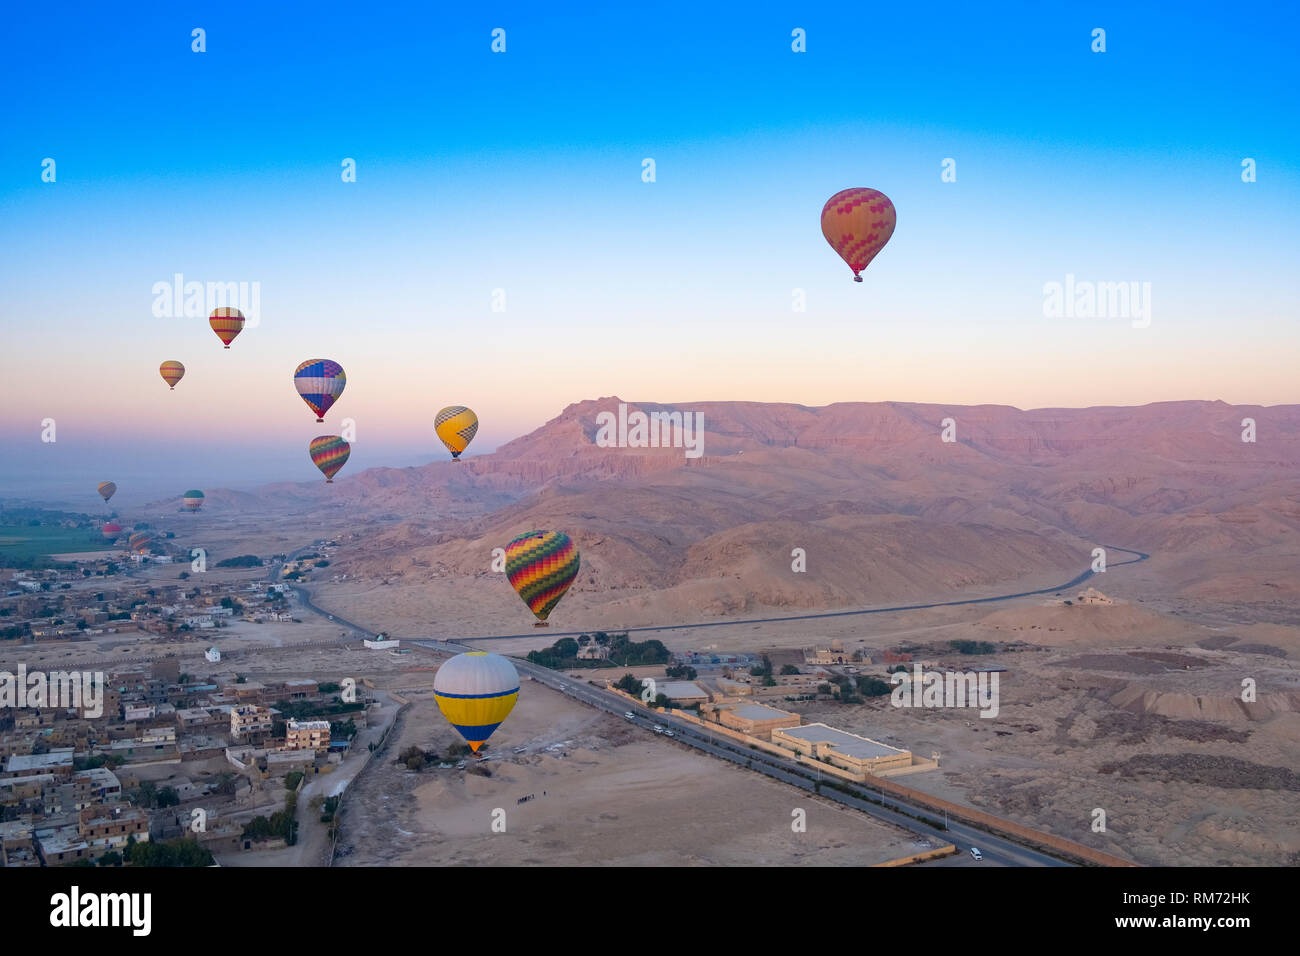 Hot air balloons at sunrise over the Valley of the Kings, Luxor, Egypt - Stock Image